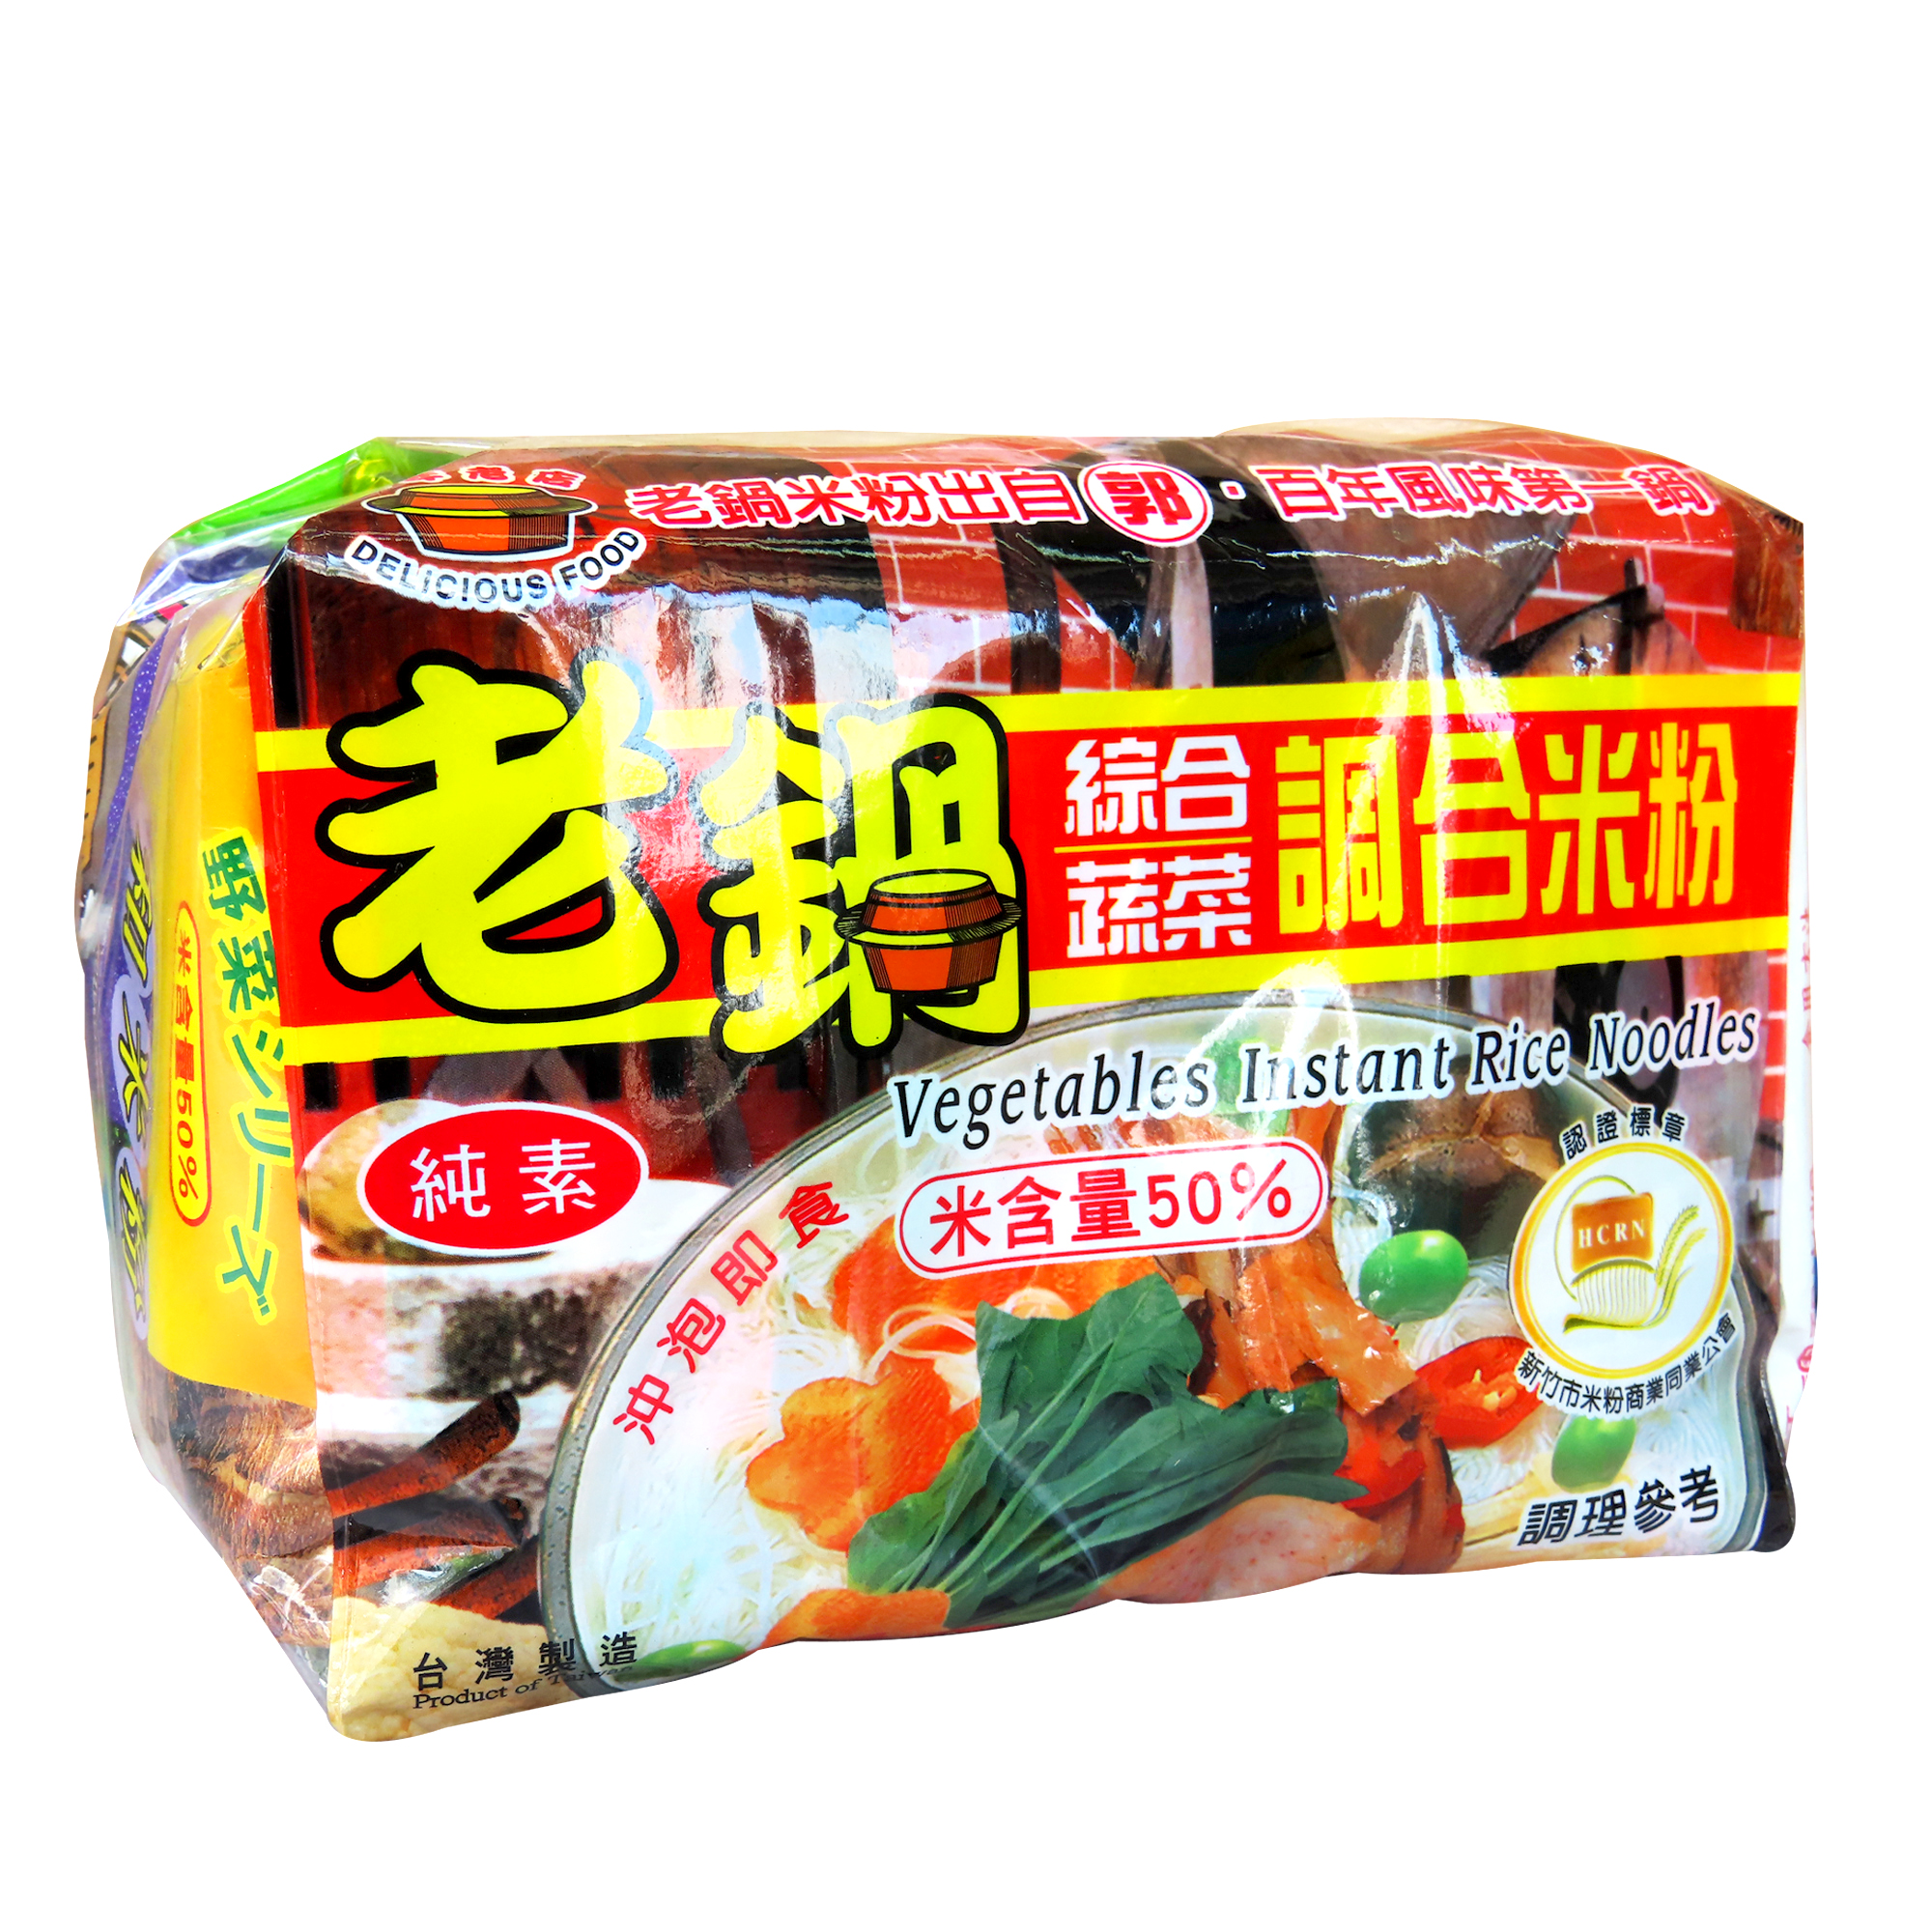 Image Rice Noodle 南兴 - 老锅综合蔬菜米粉 (5packets) 325grams